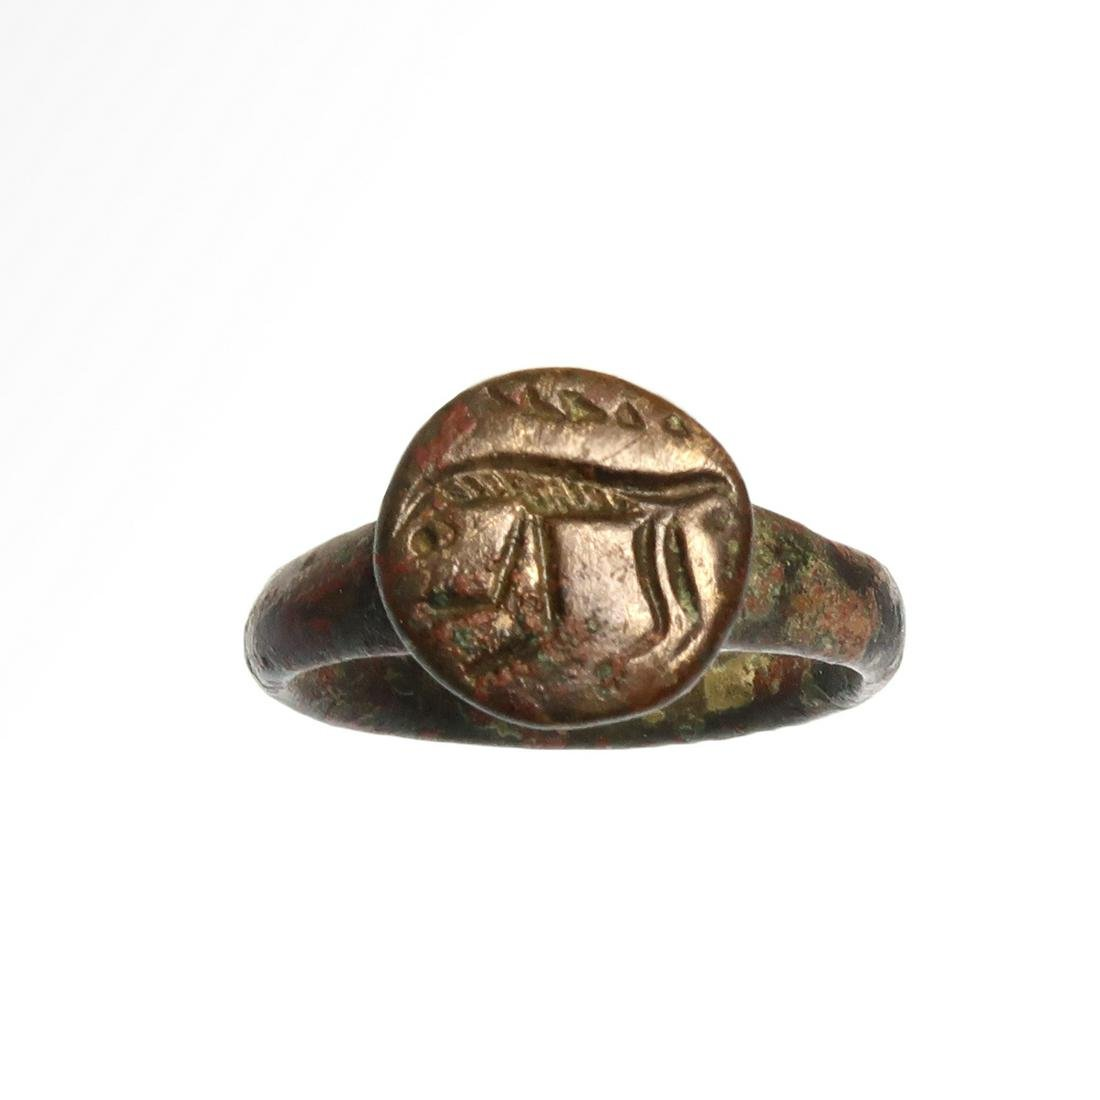 Greek Bronze Ring with Figure of a Prawn, c. 3rd